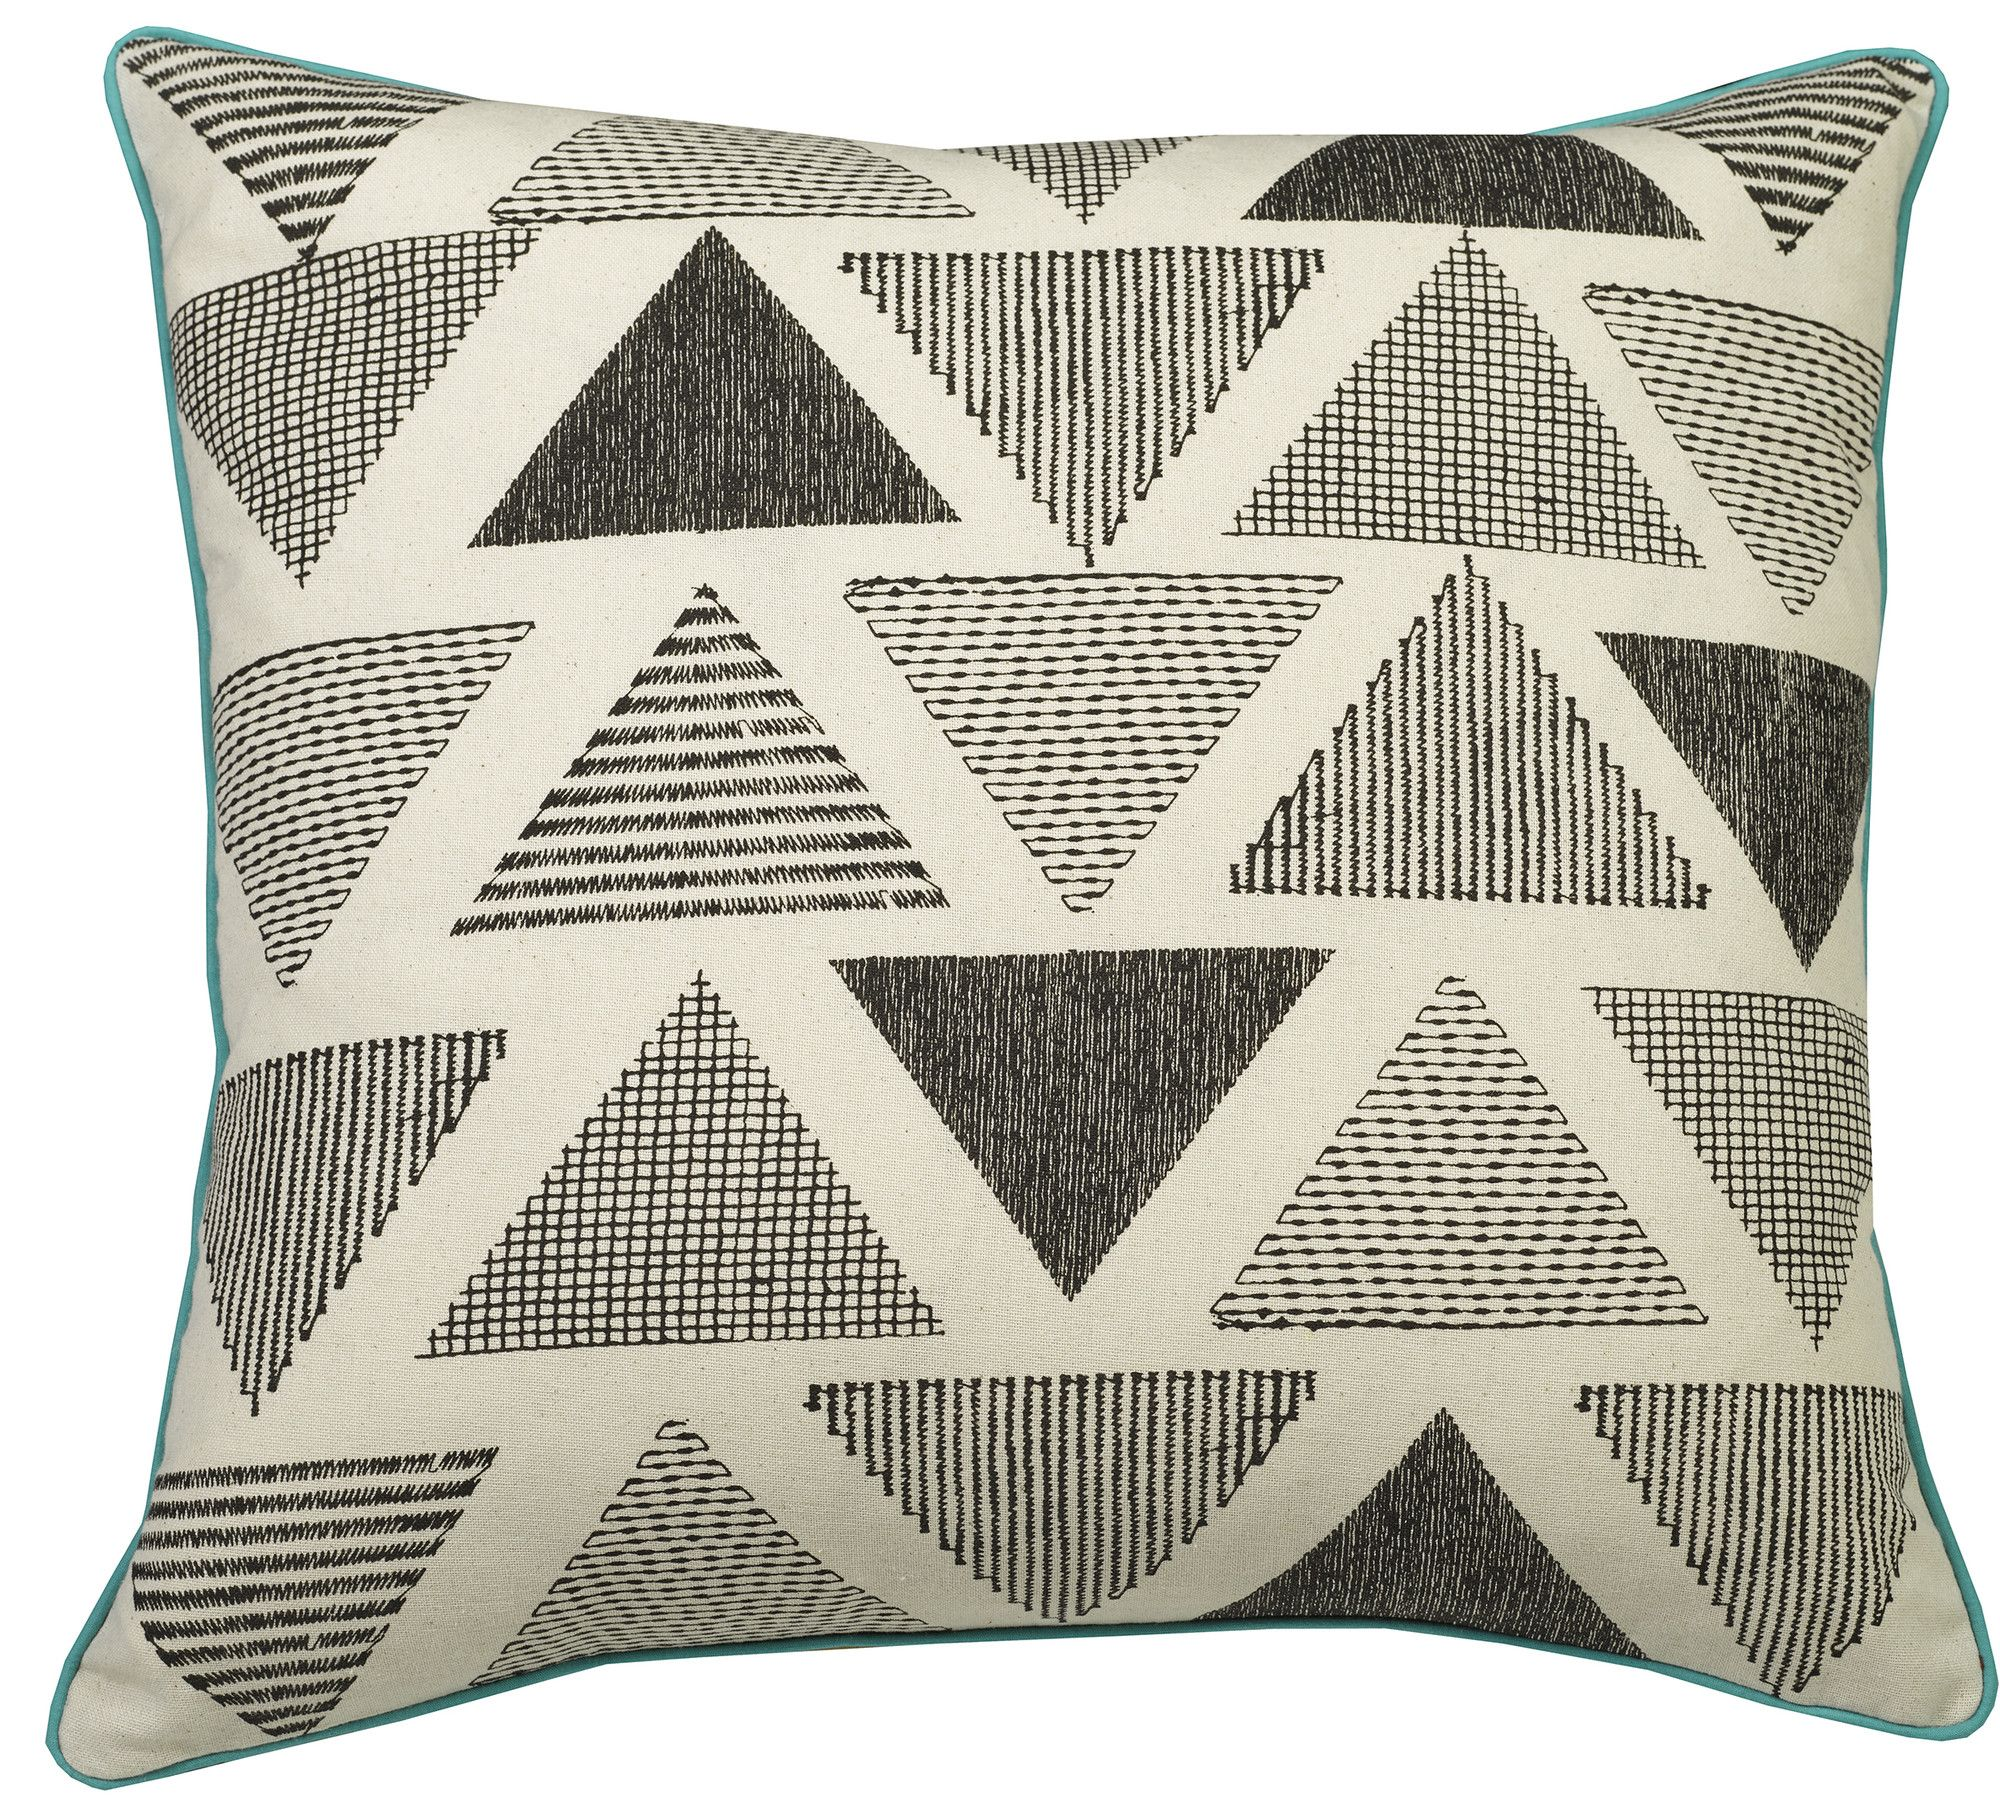 Triangle Shaped Pillows